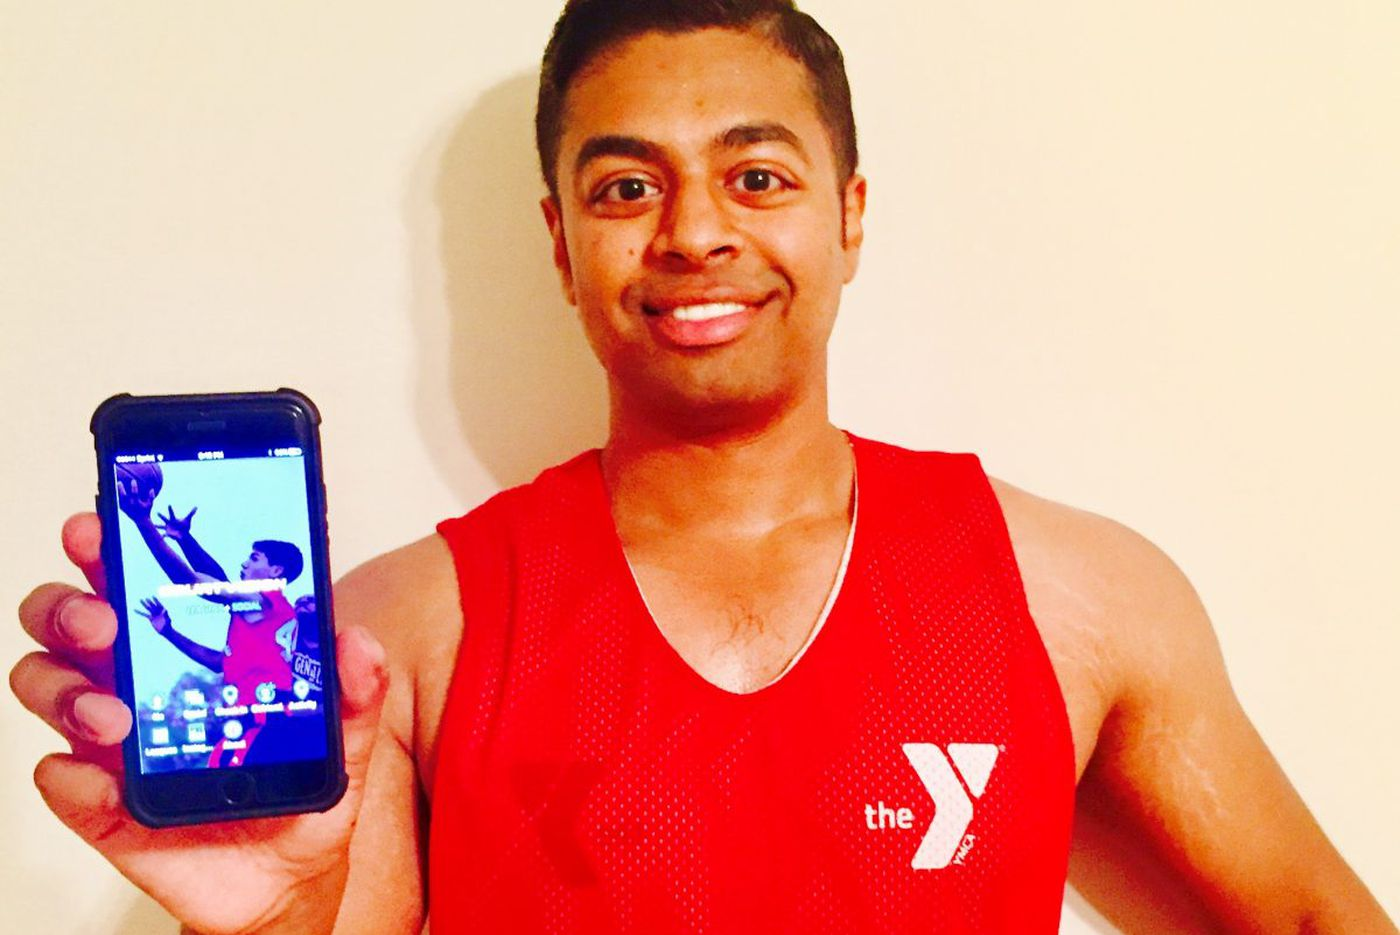 Stellar Startup answers hoopsters' question: 'Where's the game?'